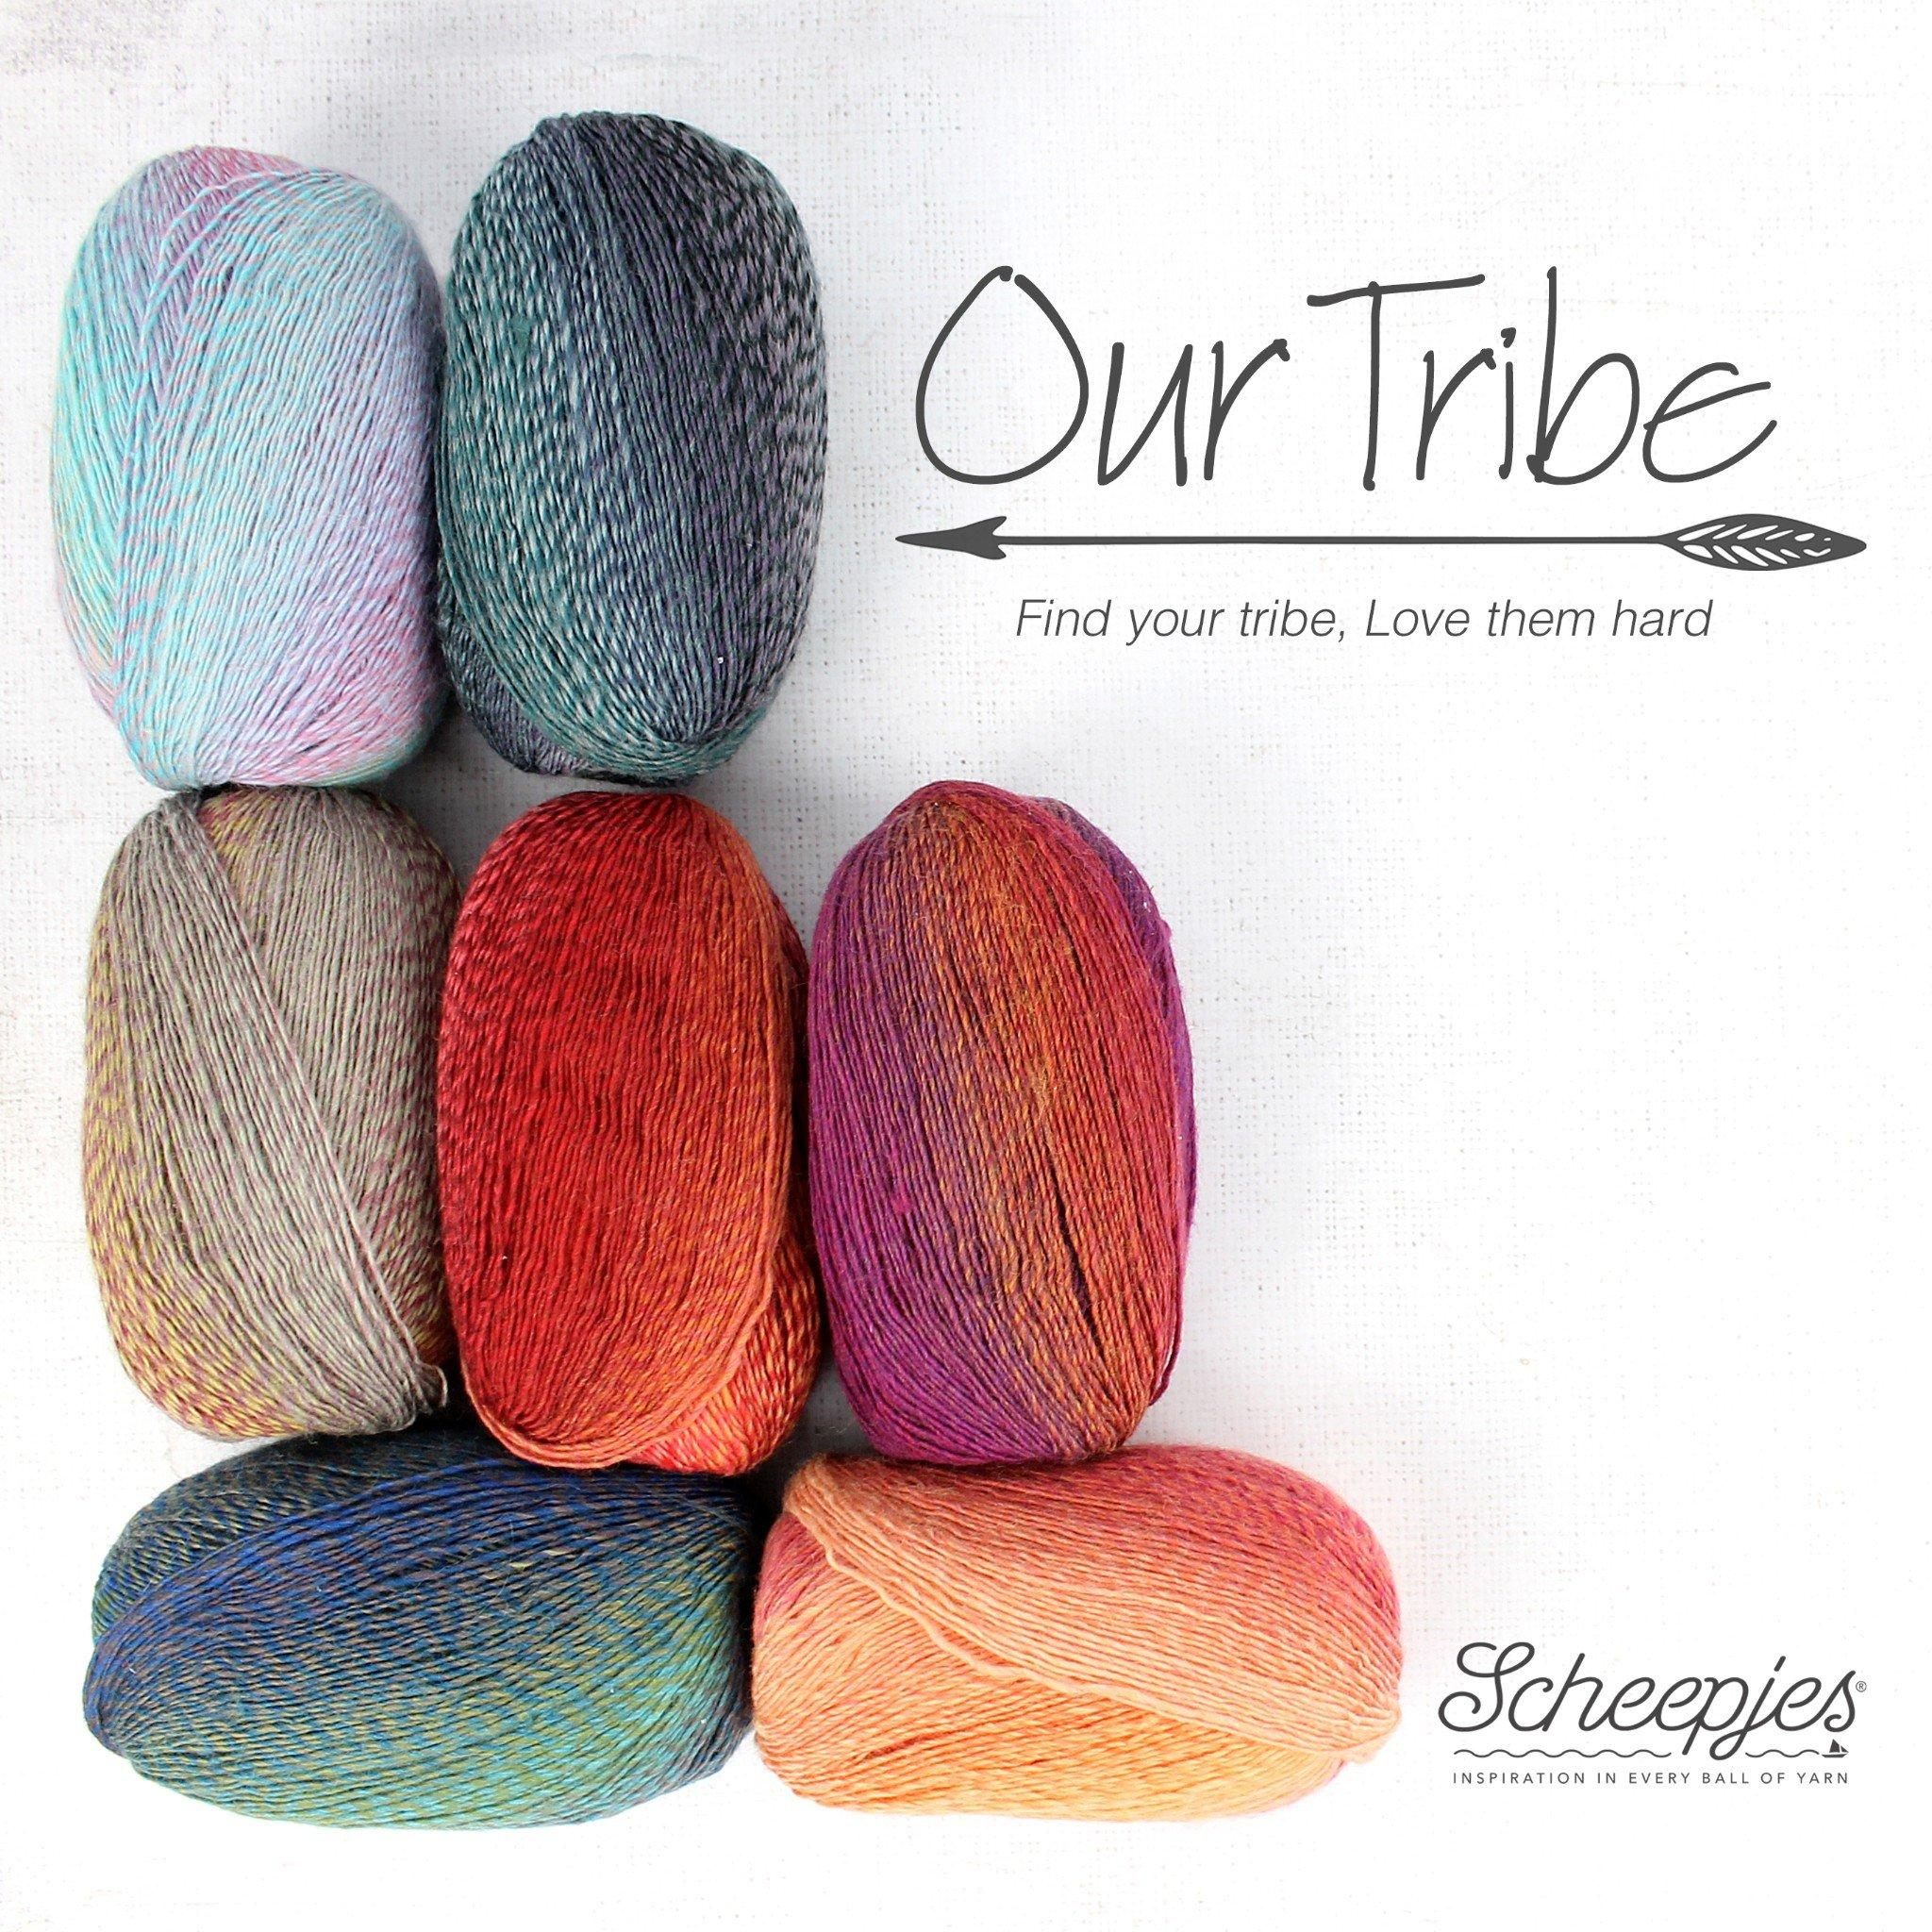 Scheepjes Our Tribe - It's all in a nutshell 973